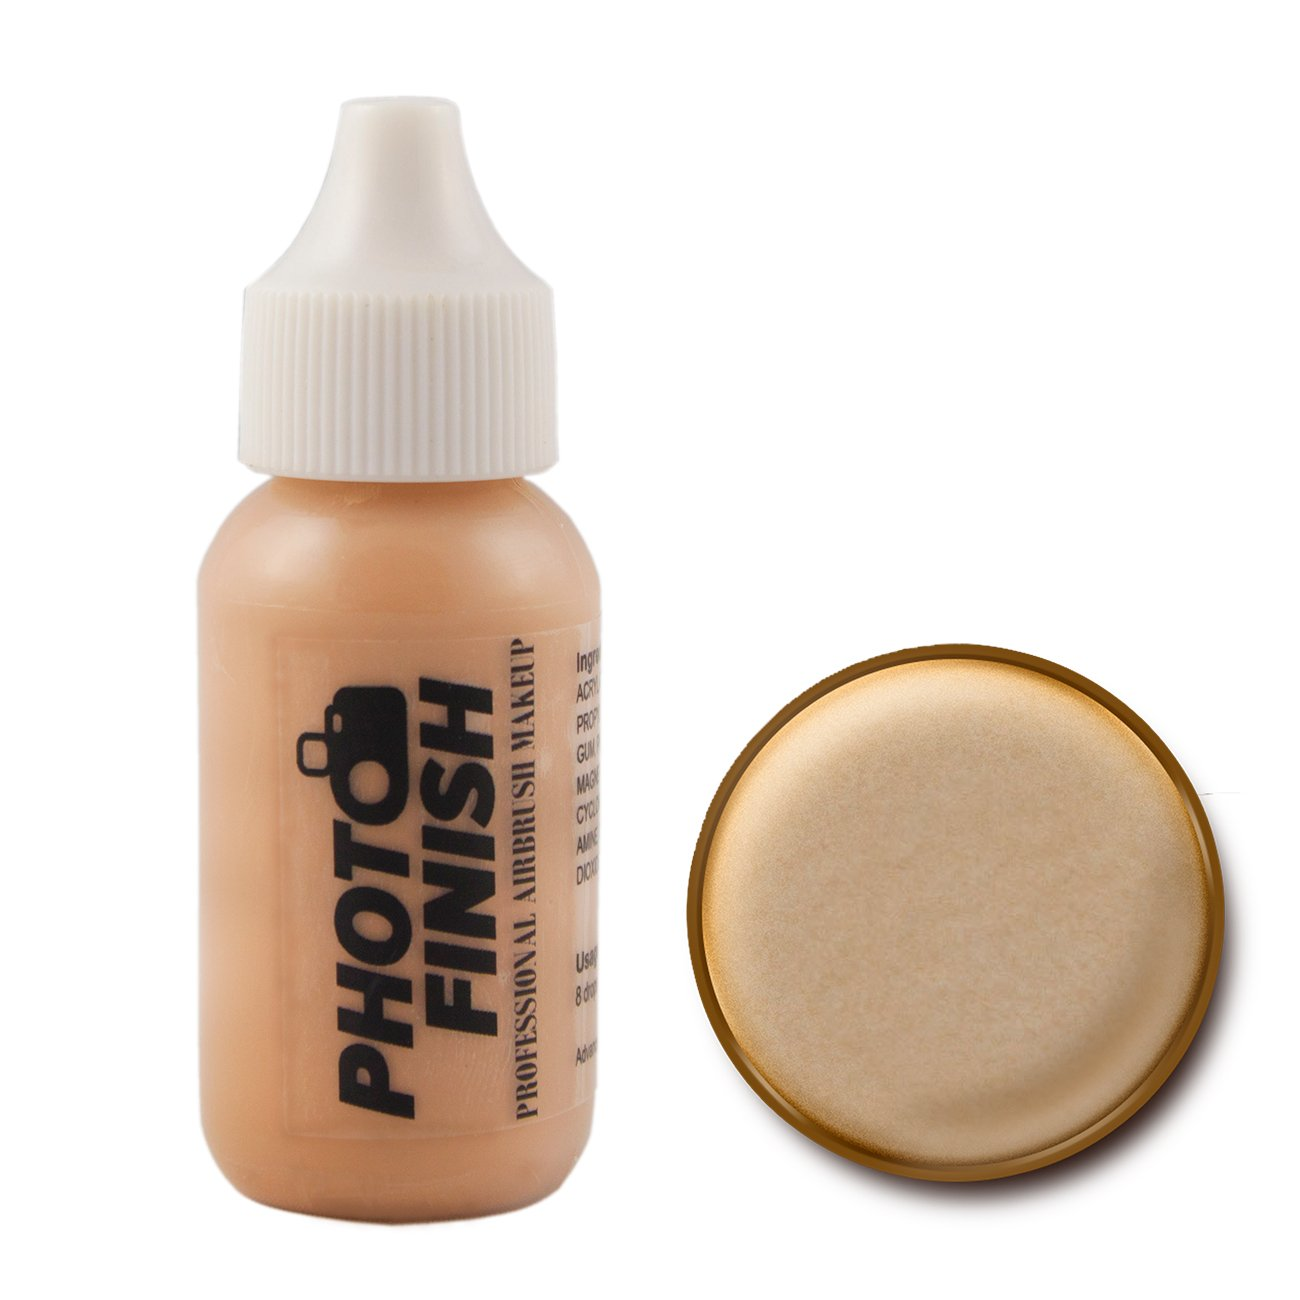 Photo Finish Airbrush Makeup - Foundation-1.0 Oz Cosmetic Face- Choose Color (Fairly Light Matte)